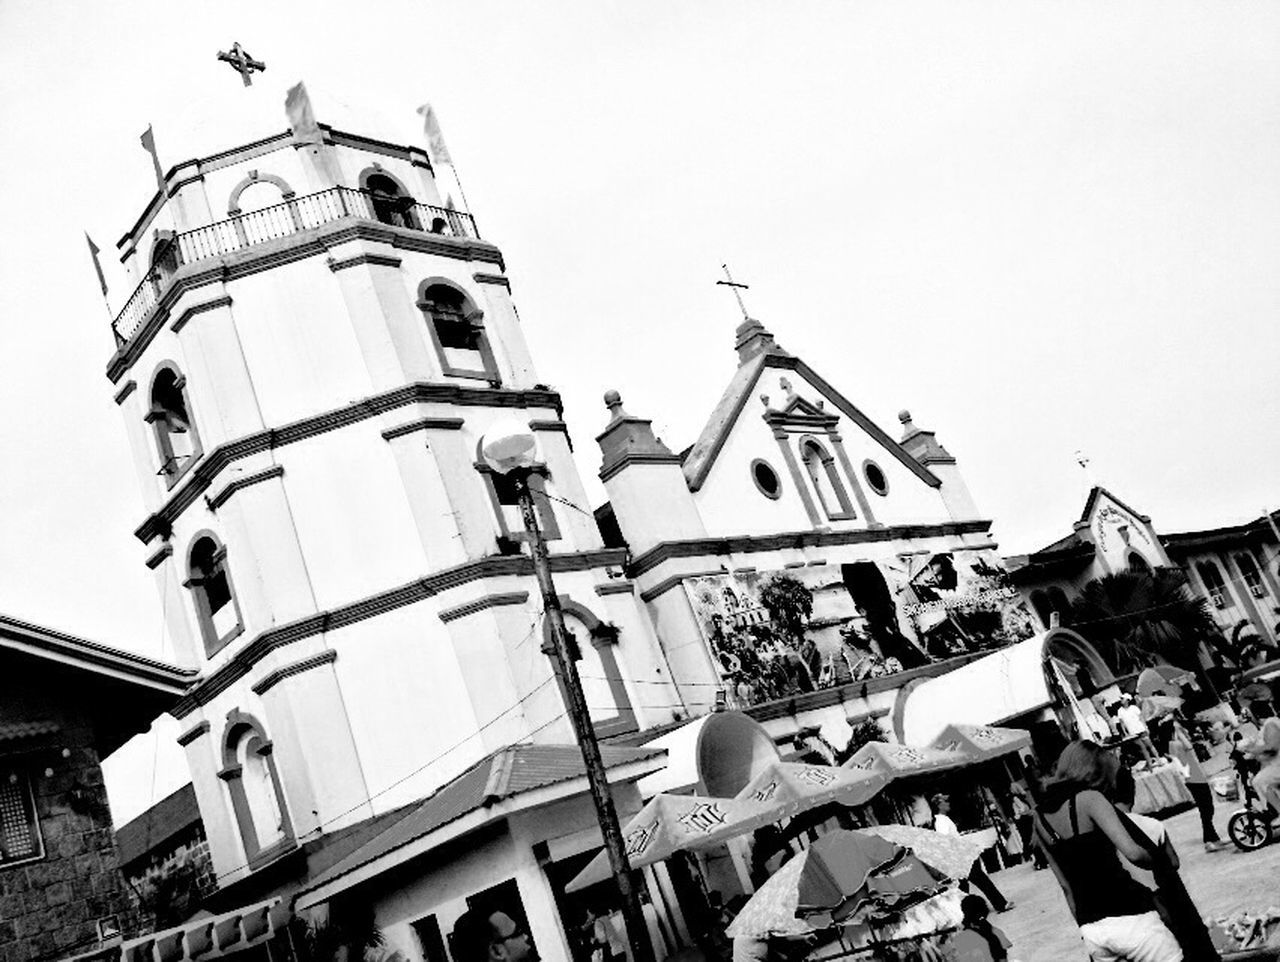 san pascual baylon church Blackandwhite HDR Iosphotography PhonePhotography Checkthisout Church Phoneography IPhoneography